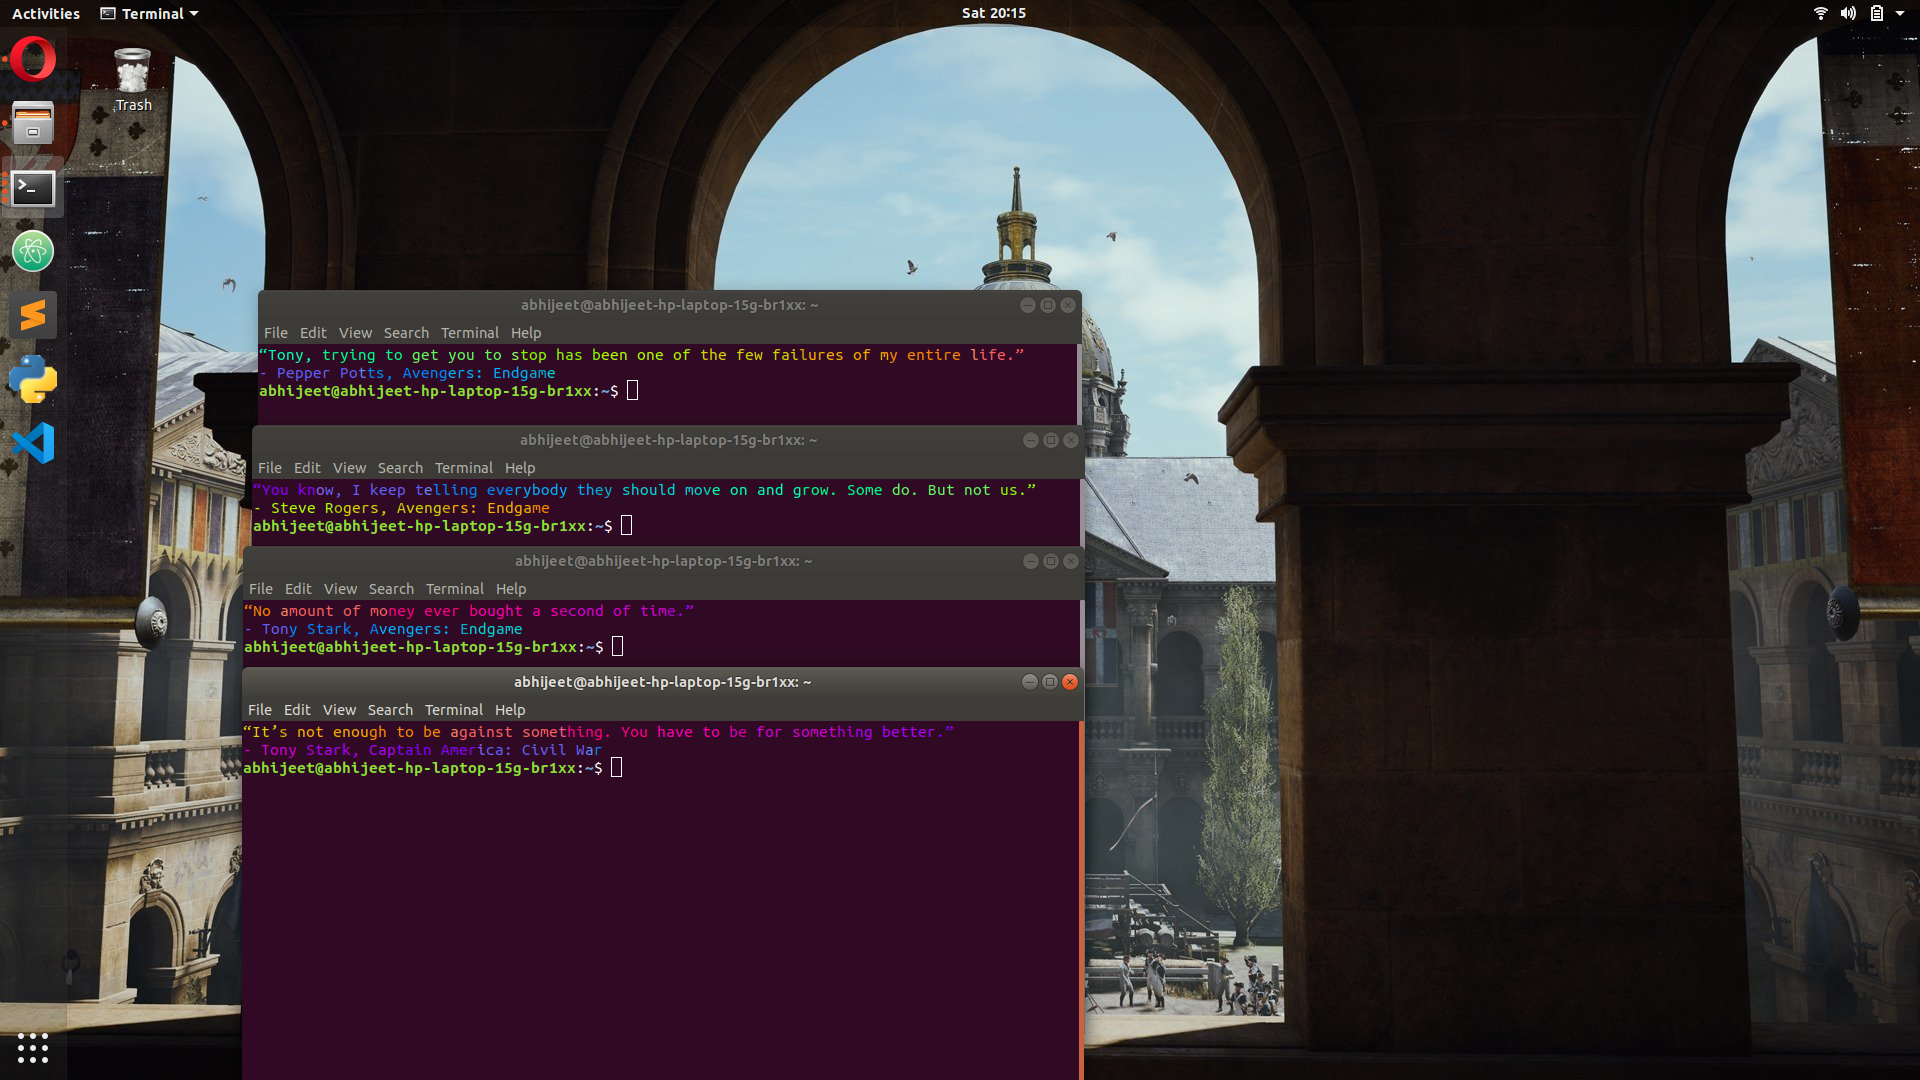 terminal launching with Quotes